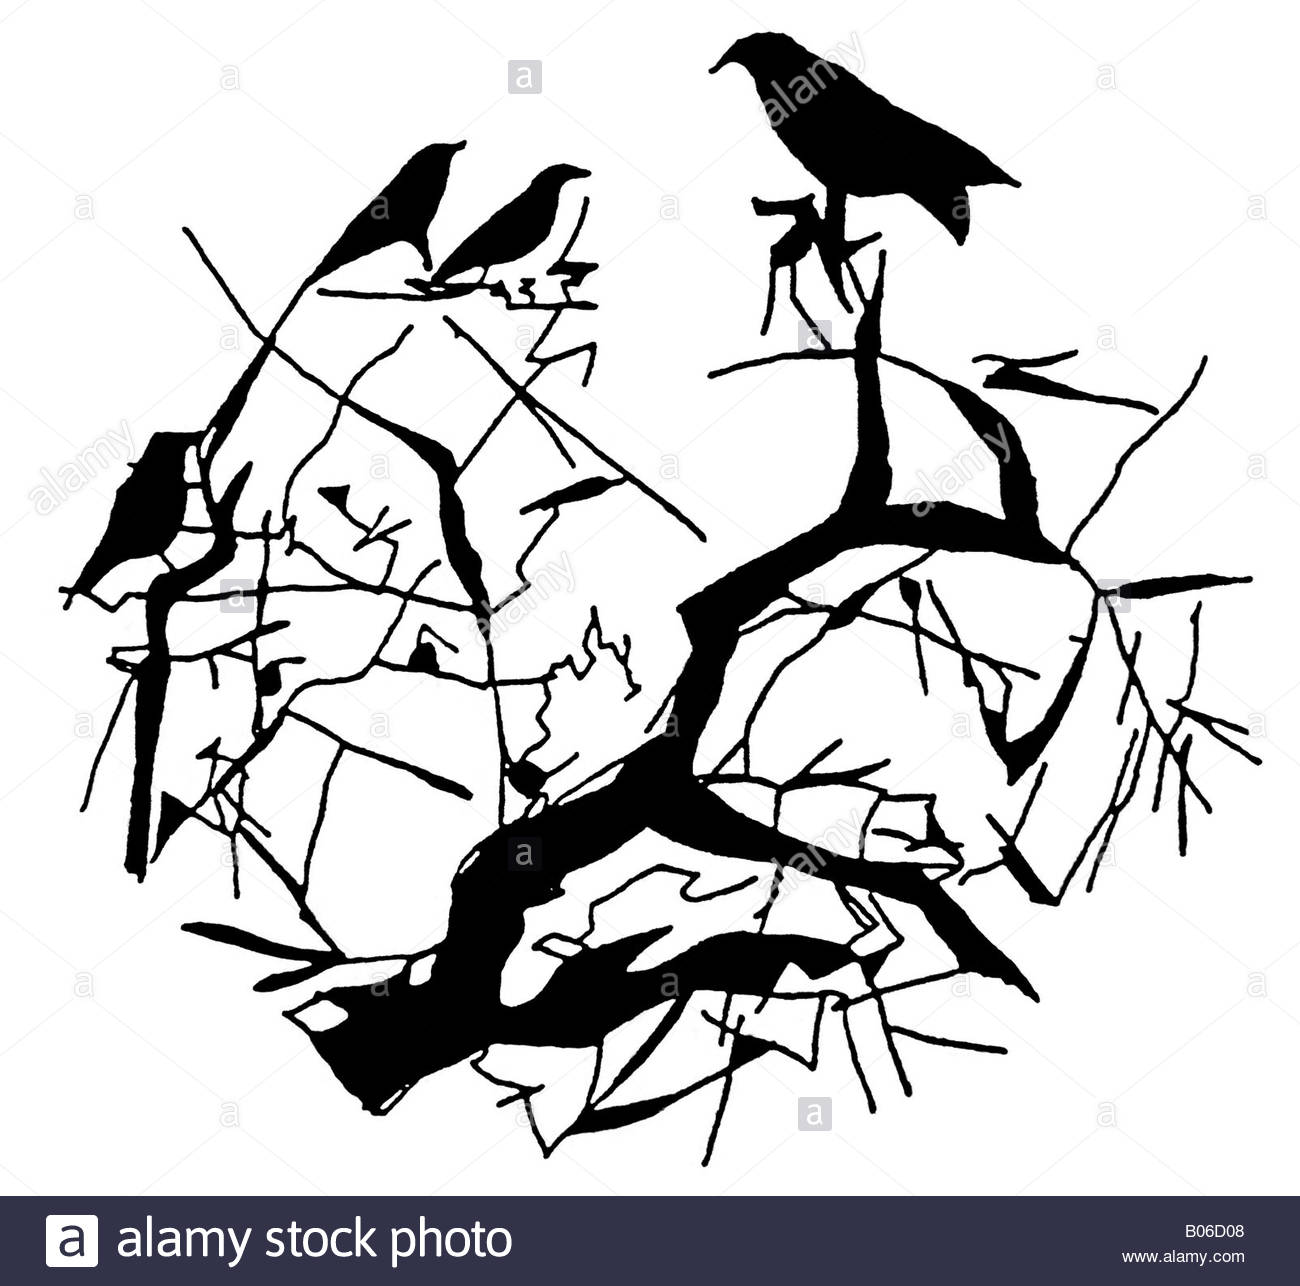 1300x1286 Hand Drawn, Pen And Ink Image Of Birds In A Tree Silhouette Stock